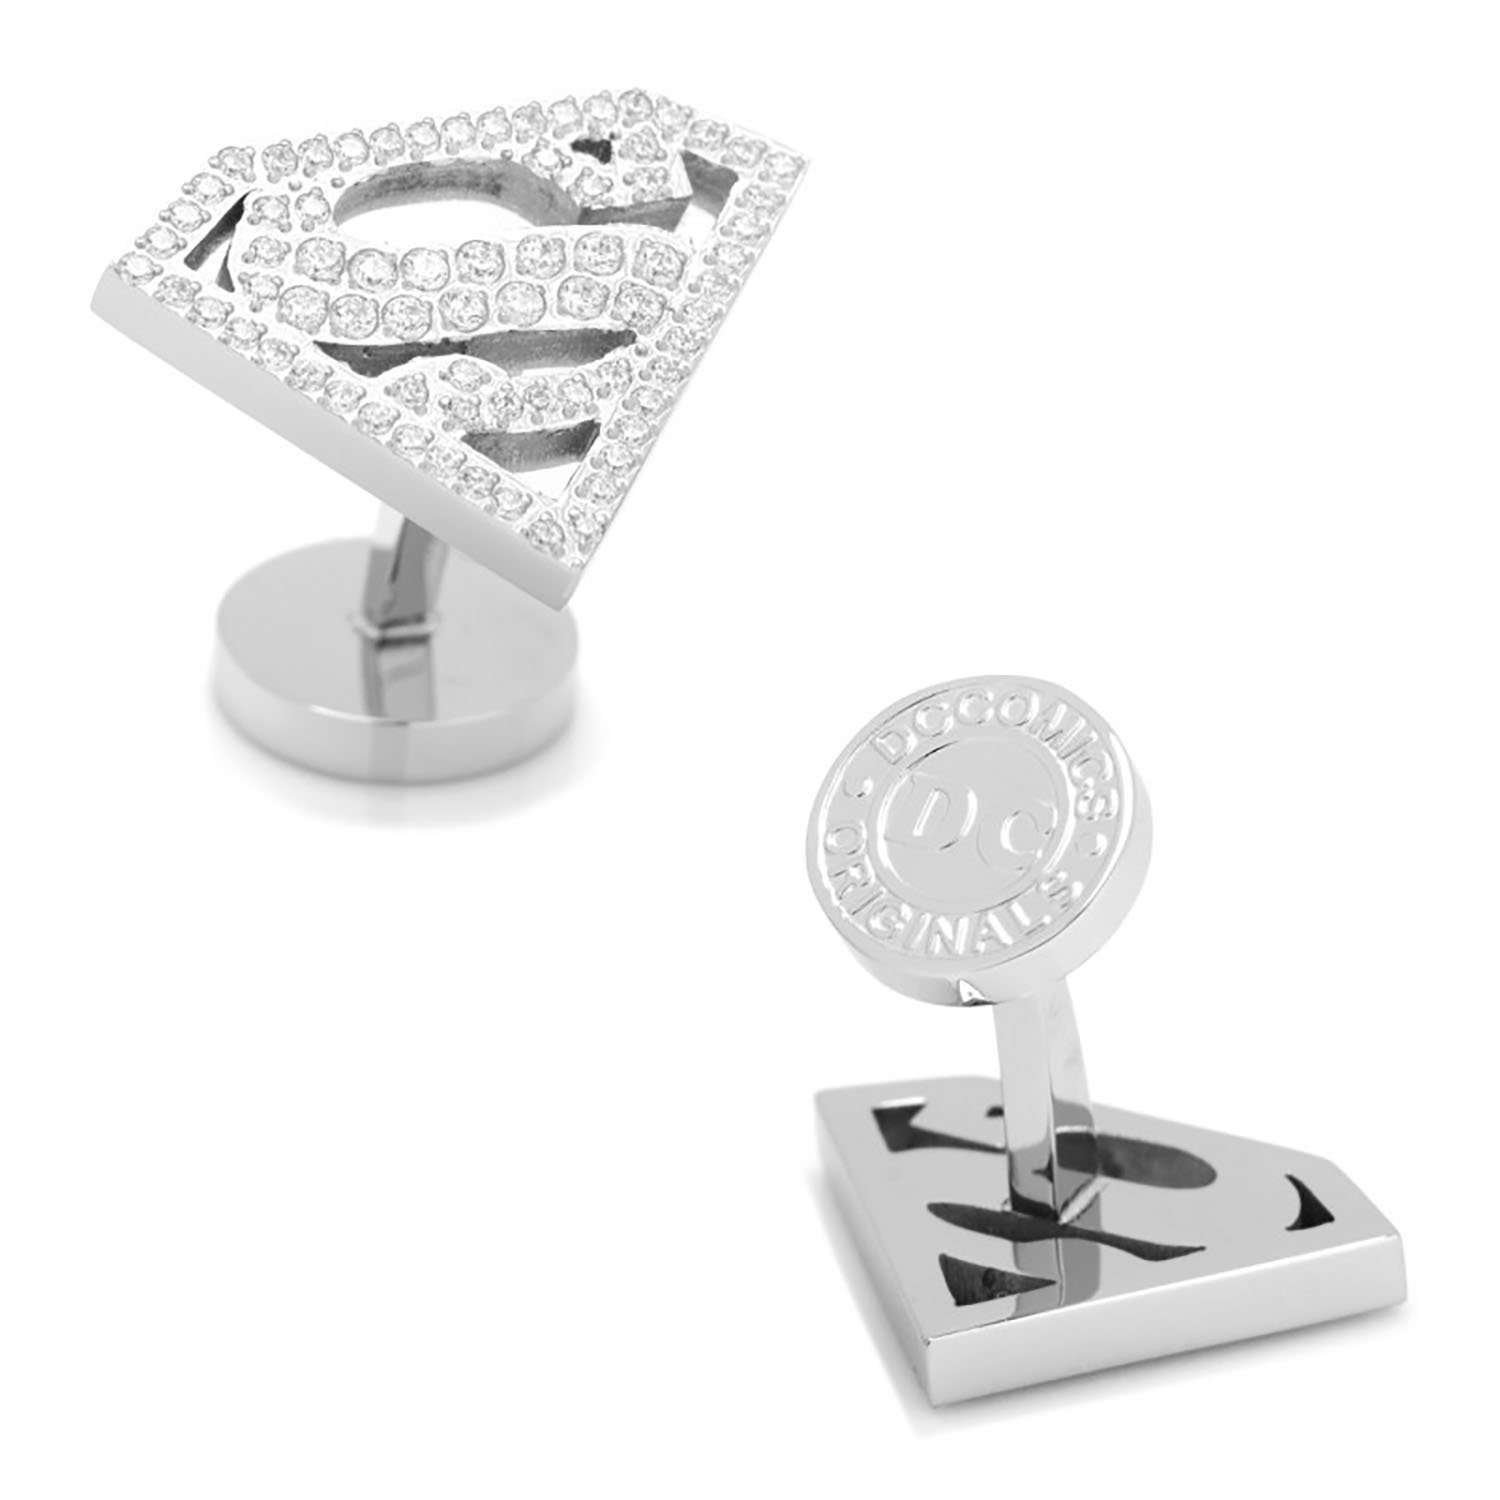 White Pave Crystal Superman Cufflinks by DC Comics Cufflinks